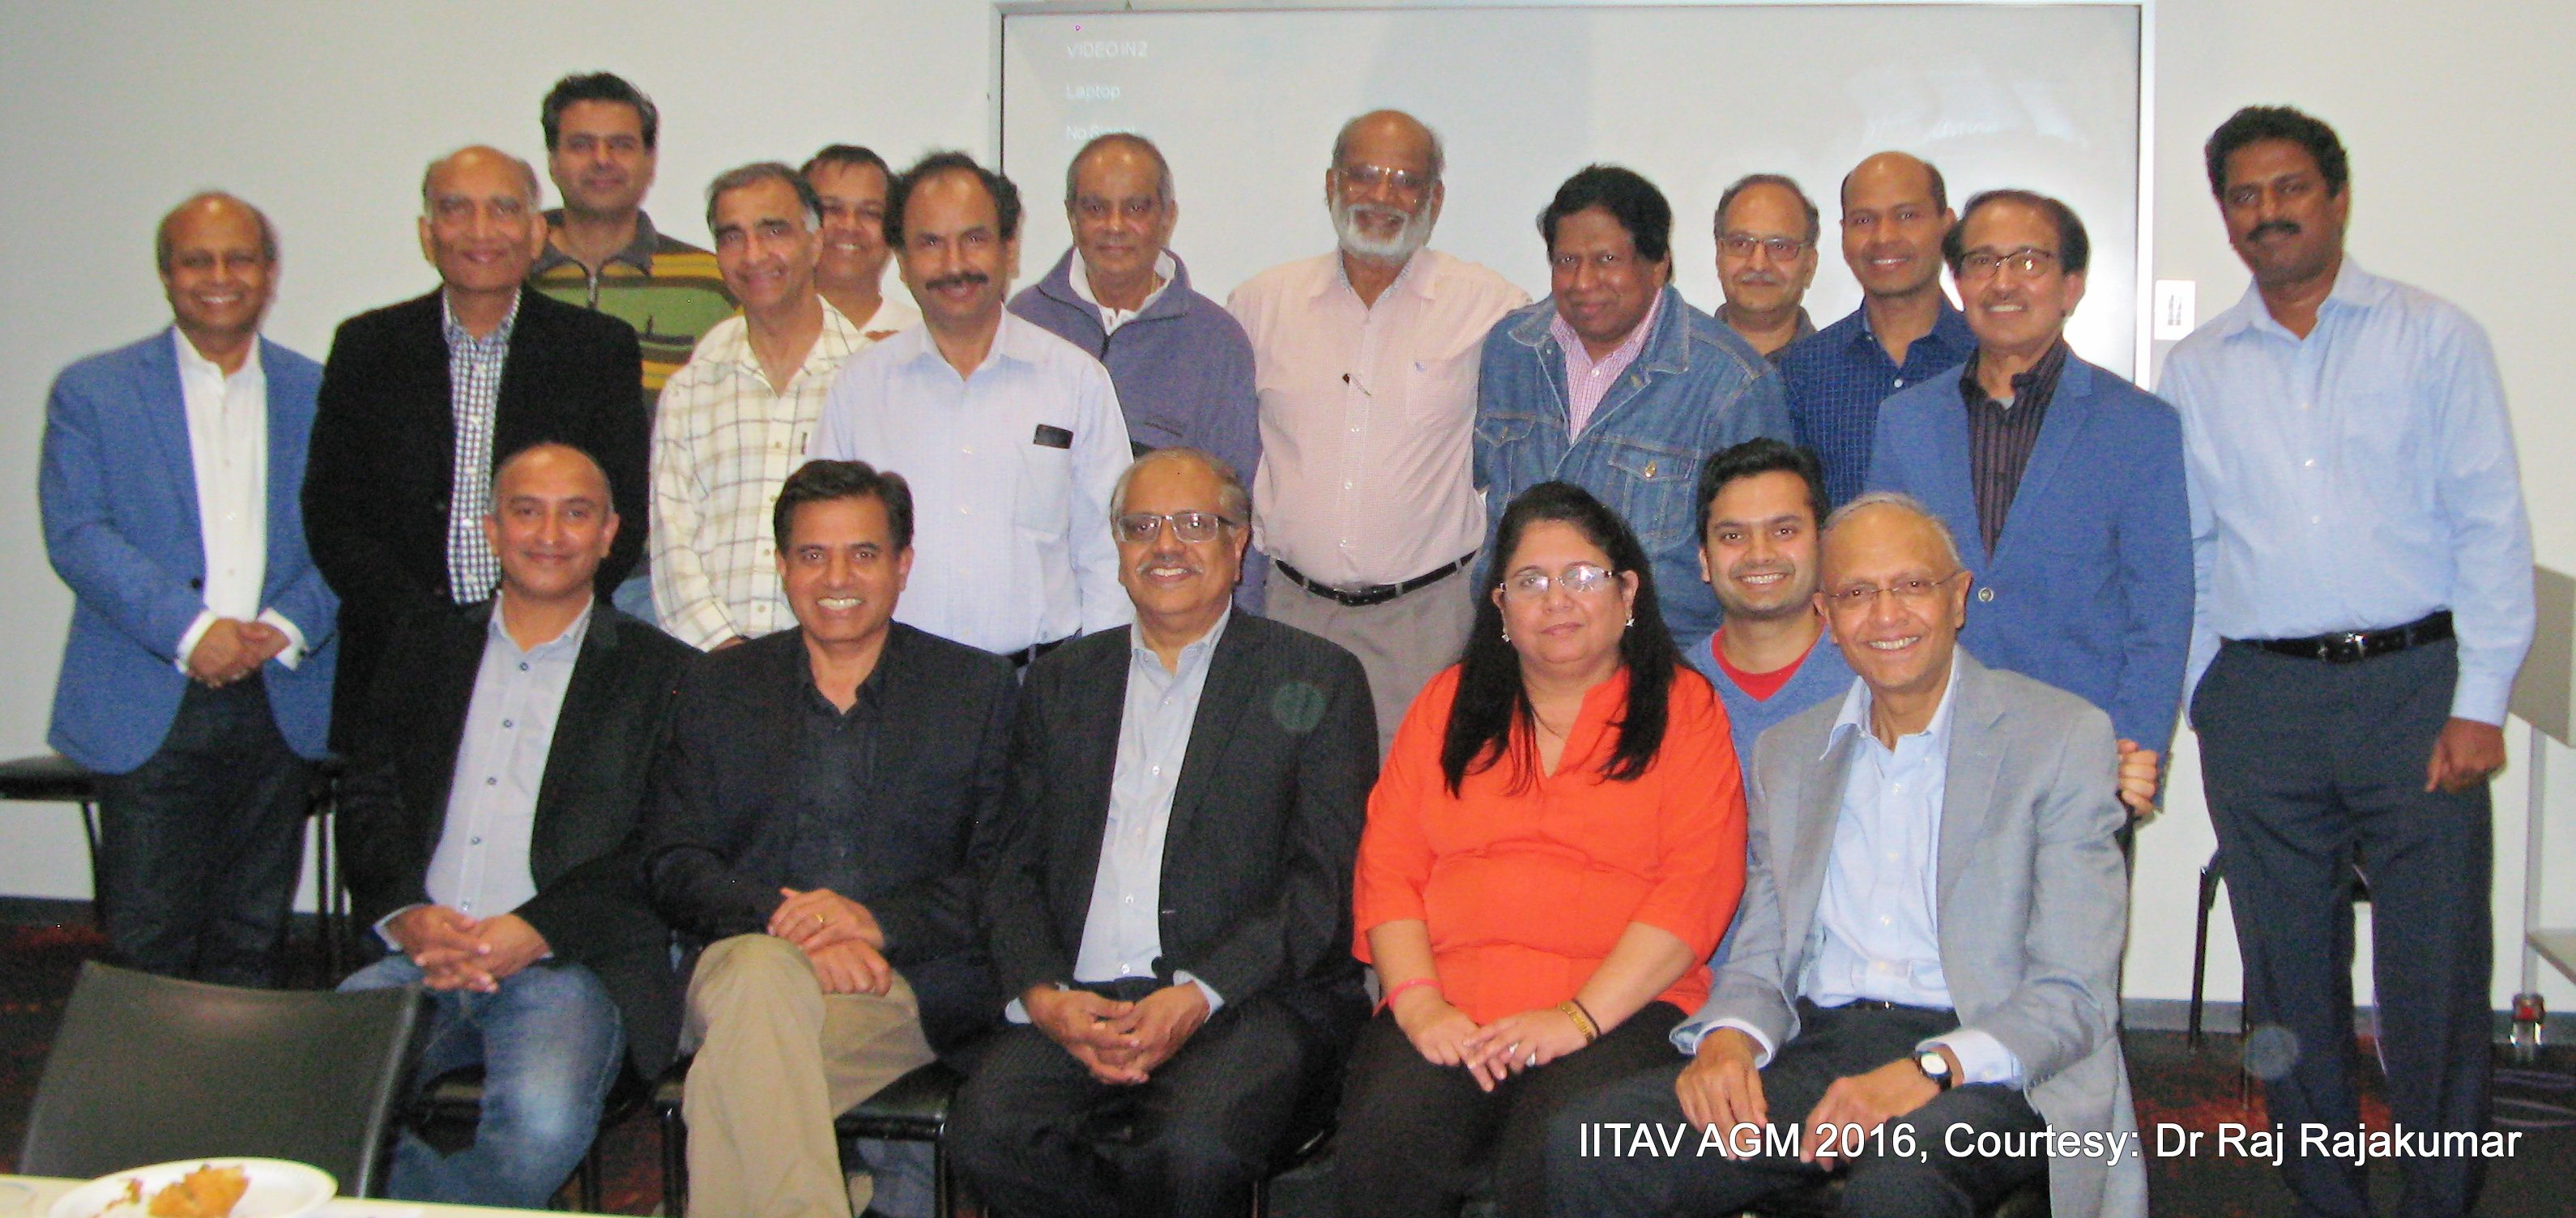 AGM_Group_Photo